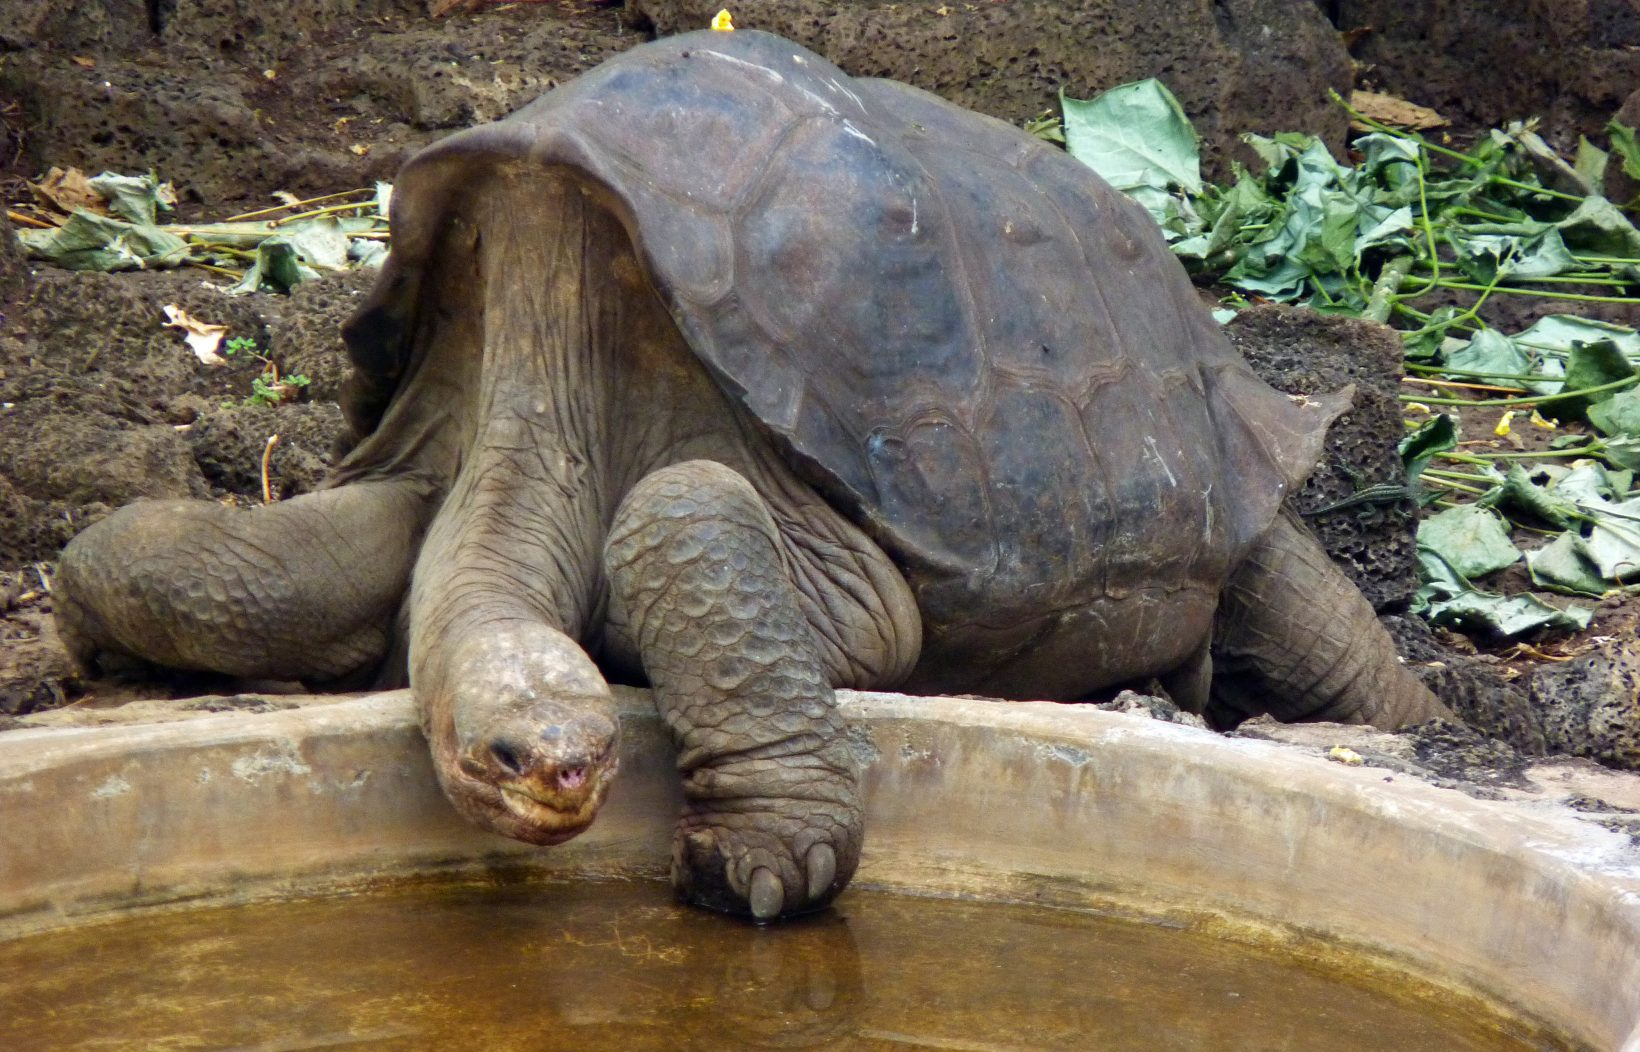 Nude Male Celebrities Super-Site with over 75,000 pictures Pictures of pinta island tortoise